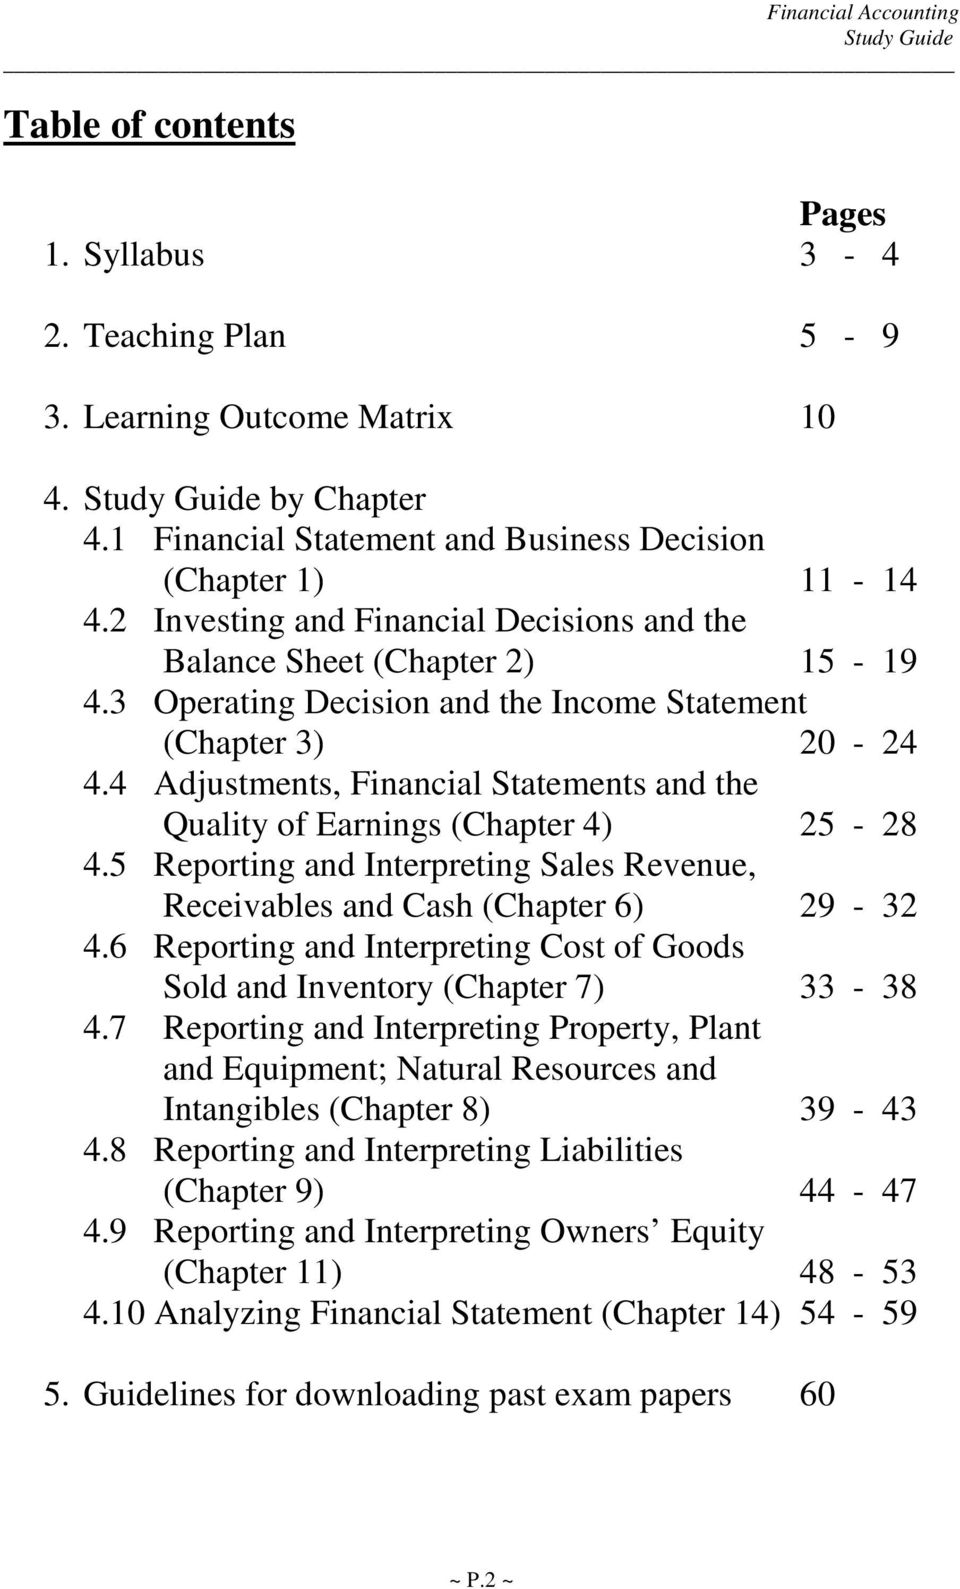 study guide century 21 accounting sample user manual u2022 rh digiterica co